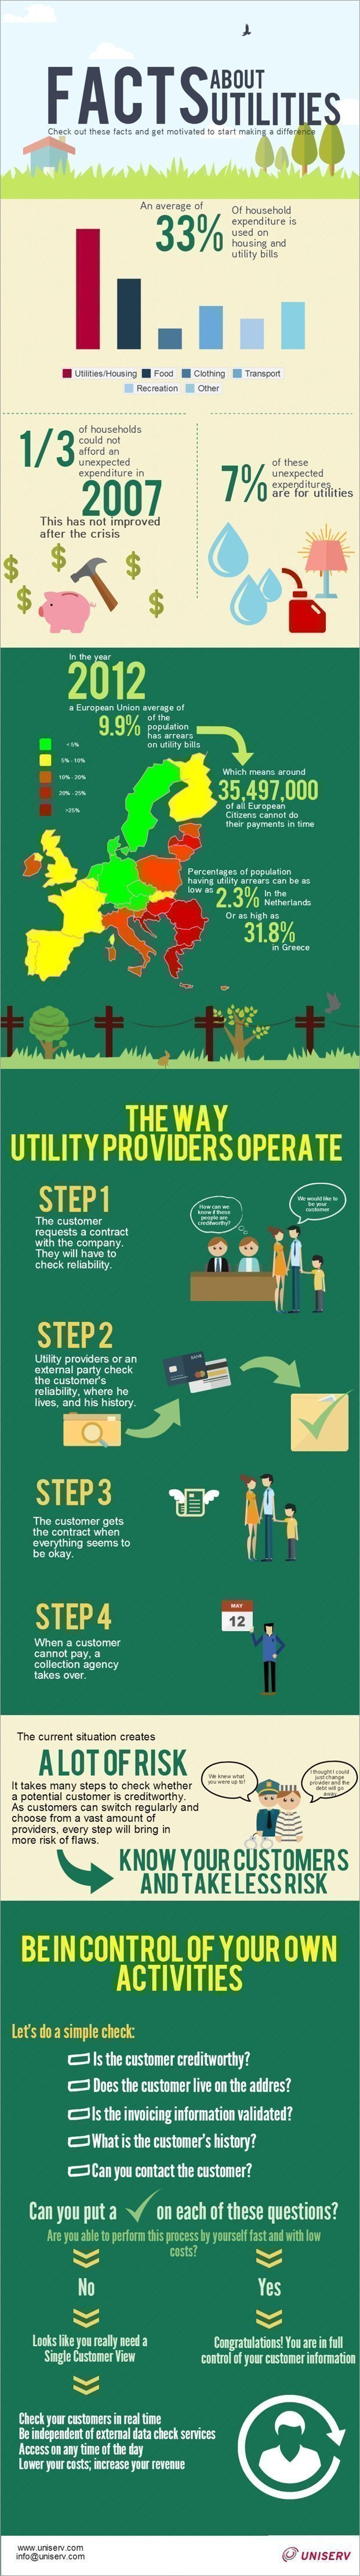 What utilities do wrong in their customer communication?